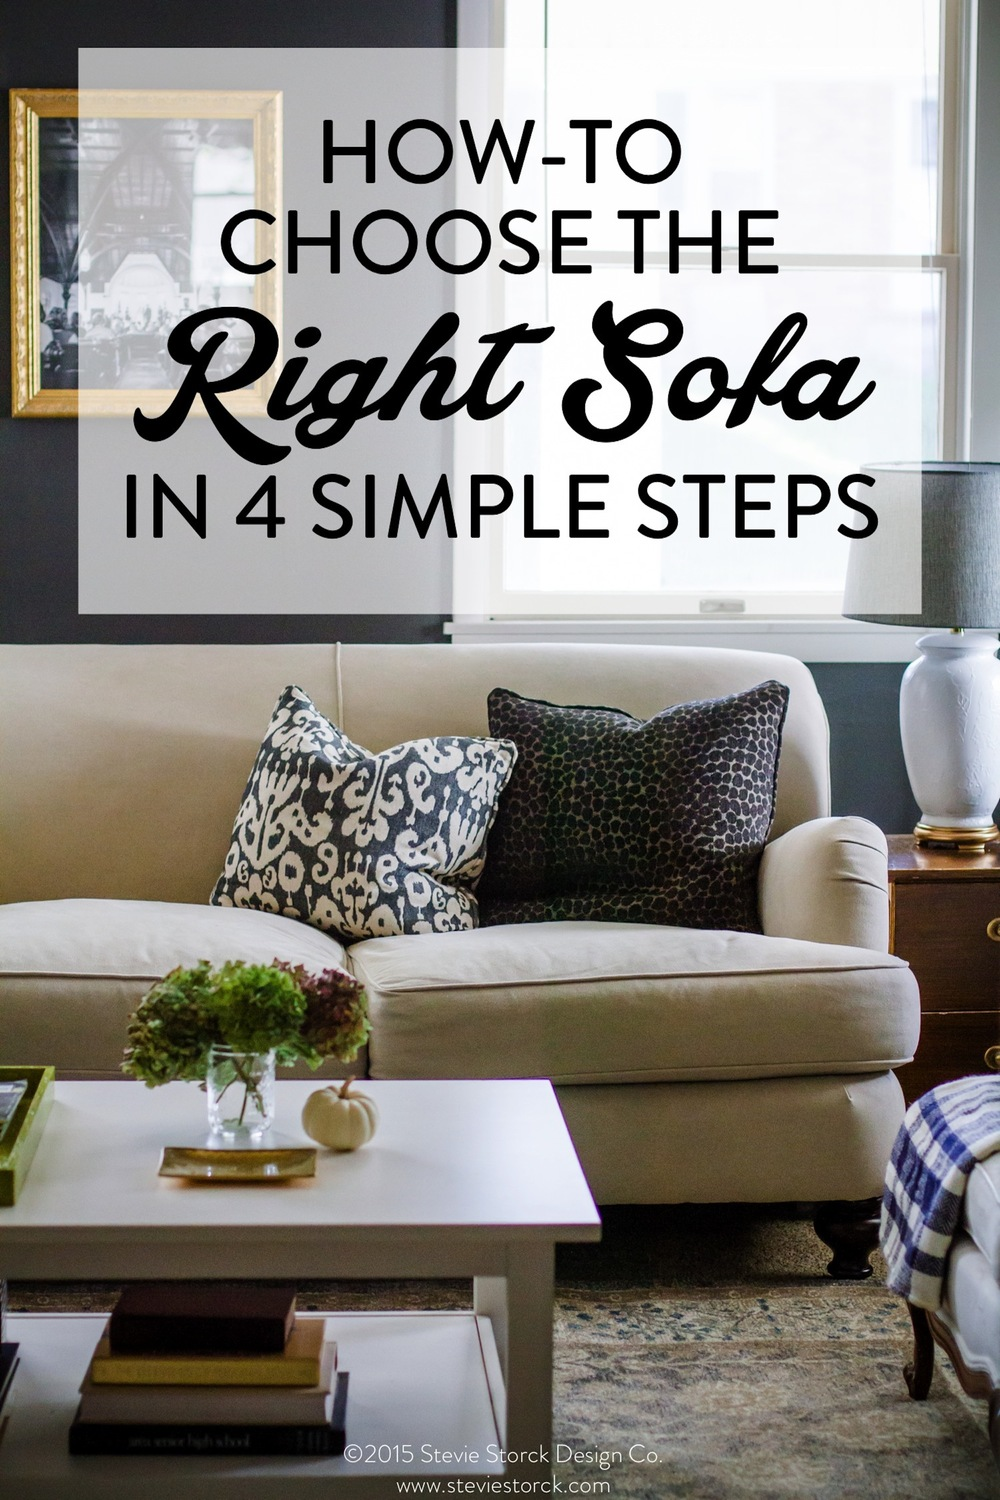 MUST KNOW TIPS for sofa shopping! This easy guide will teach you what to look for and how to find the perfect couch for your style, needs and budget! Tips from a professional interior designer.